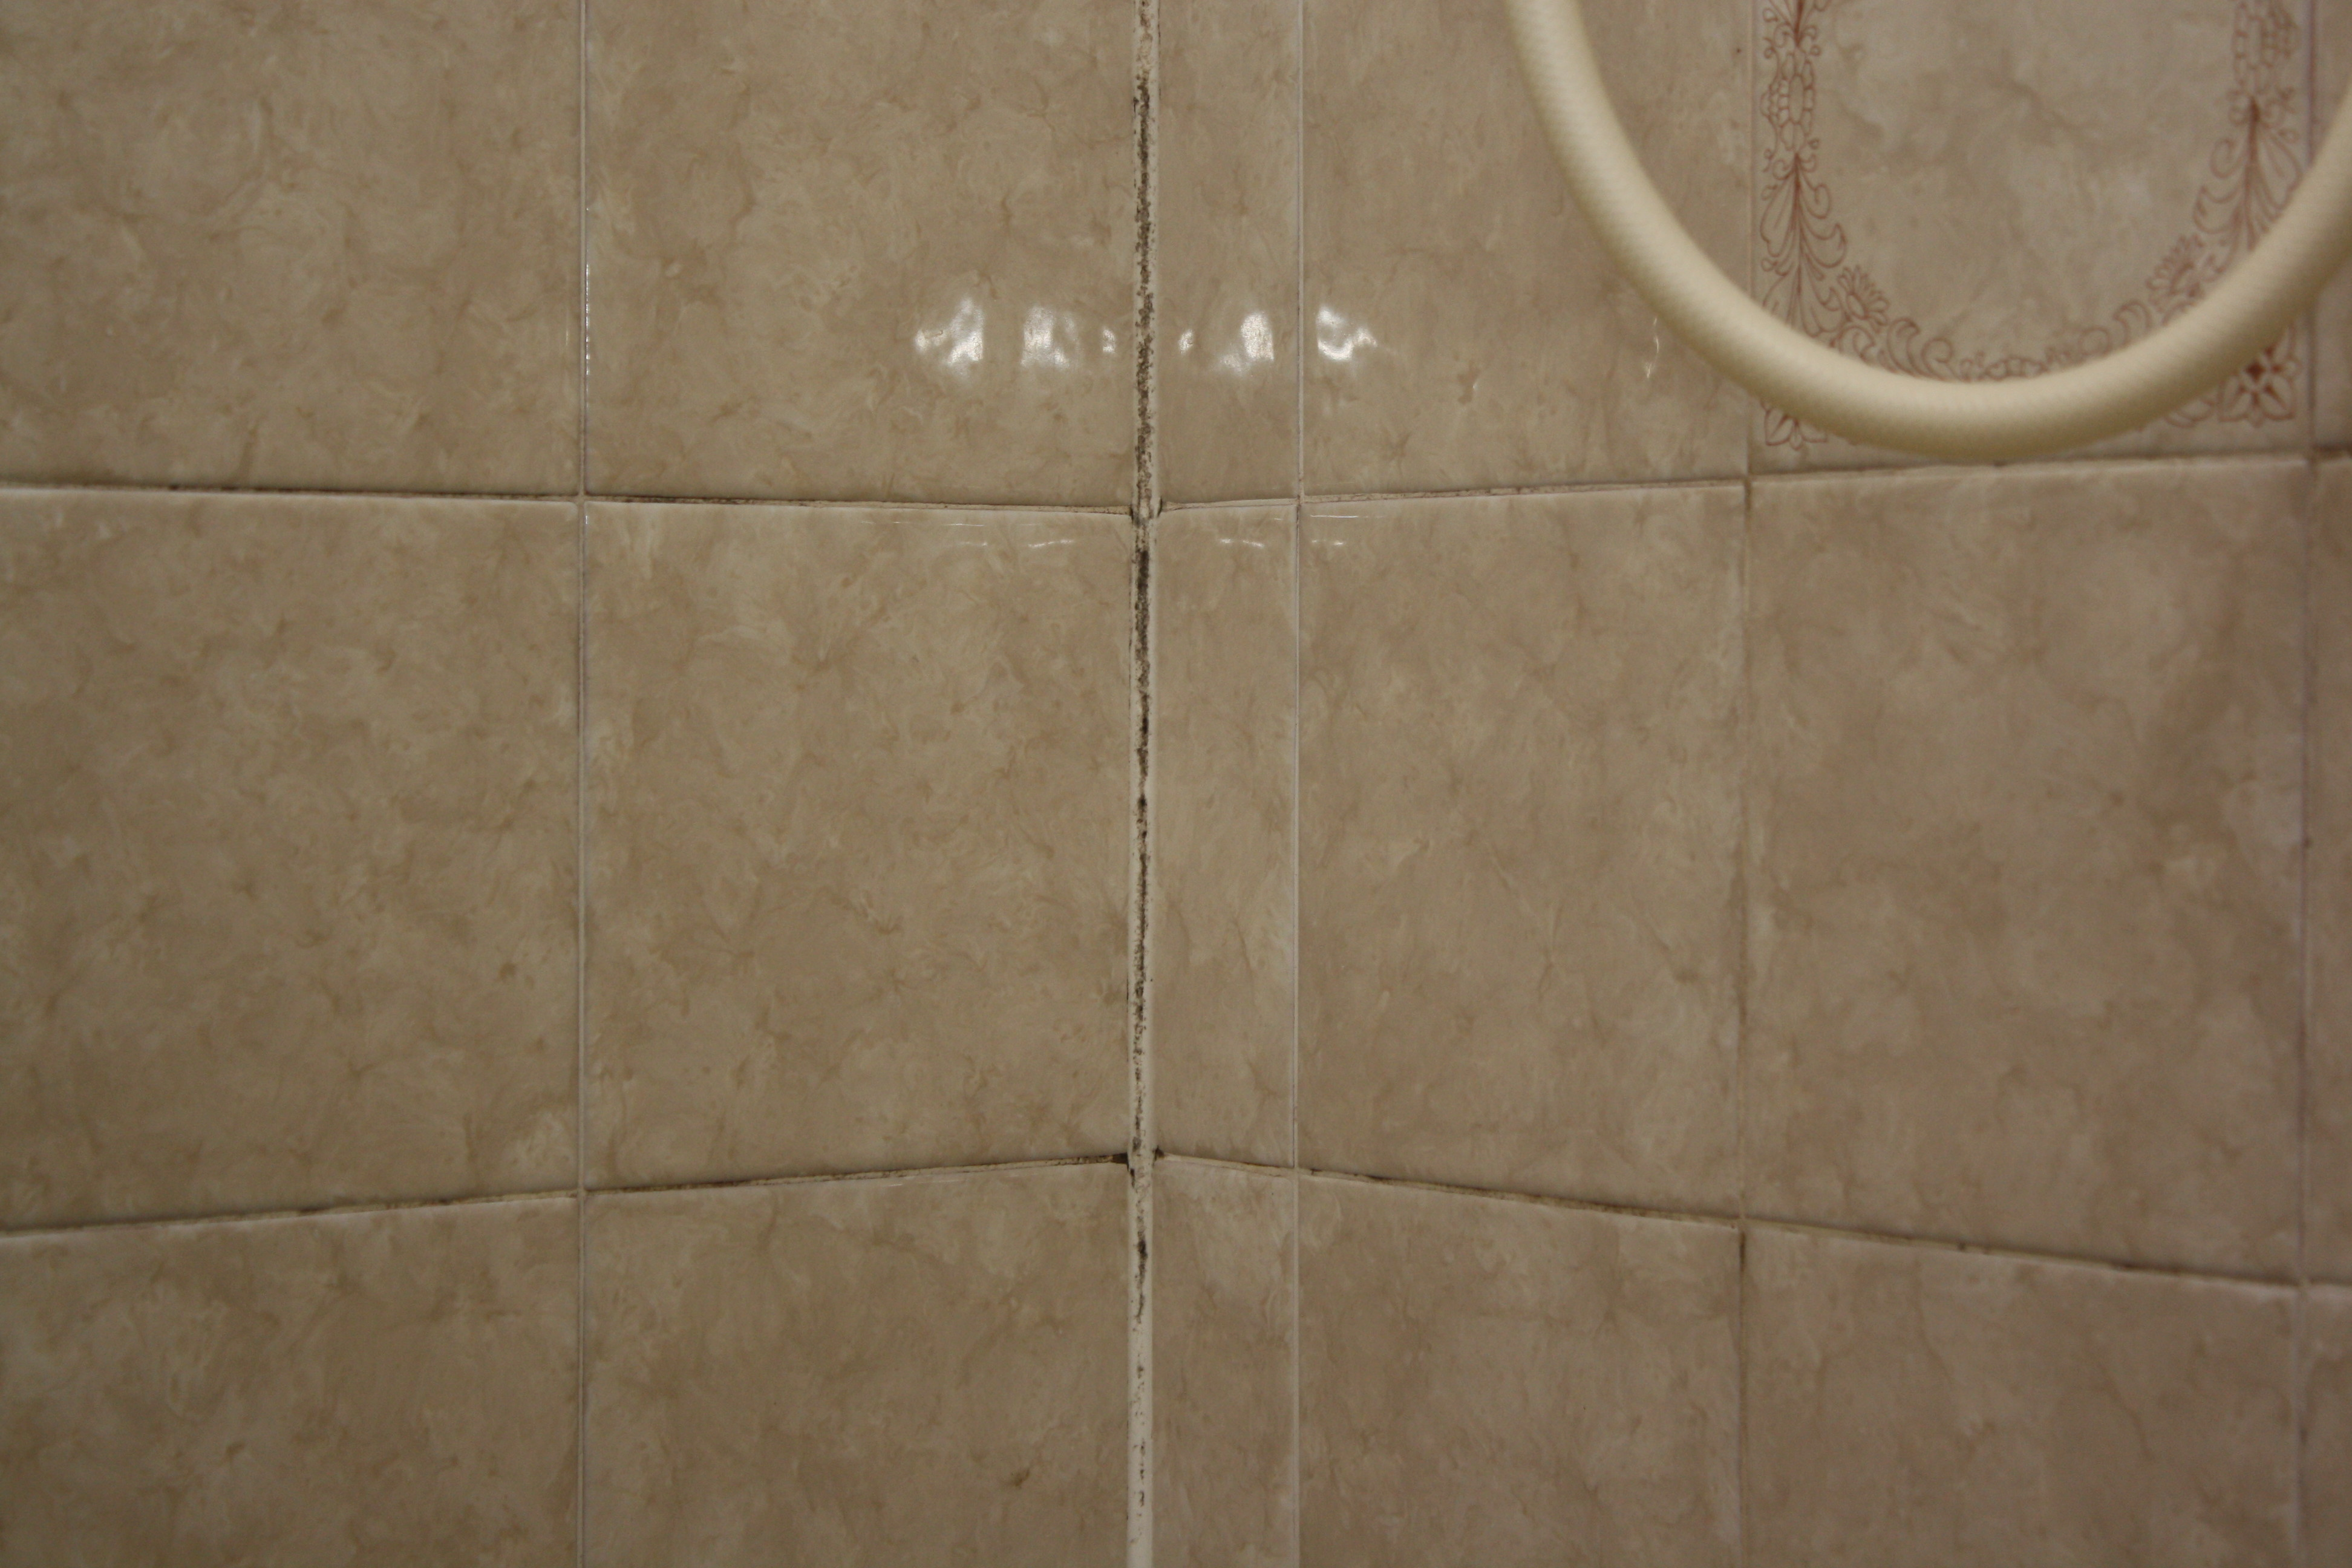 Mold count - Bathroom wall mold removal ...